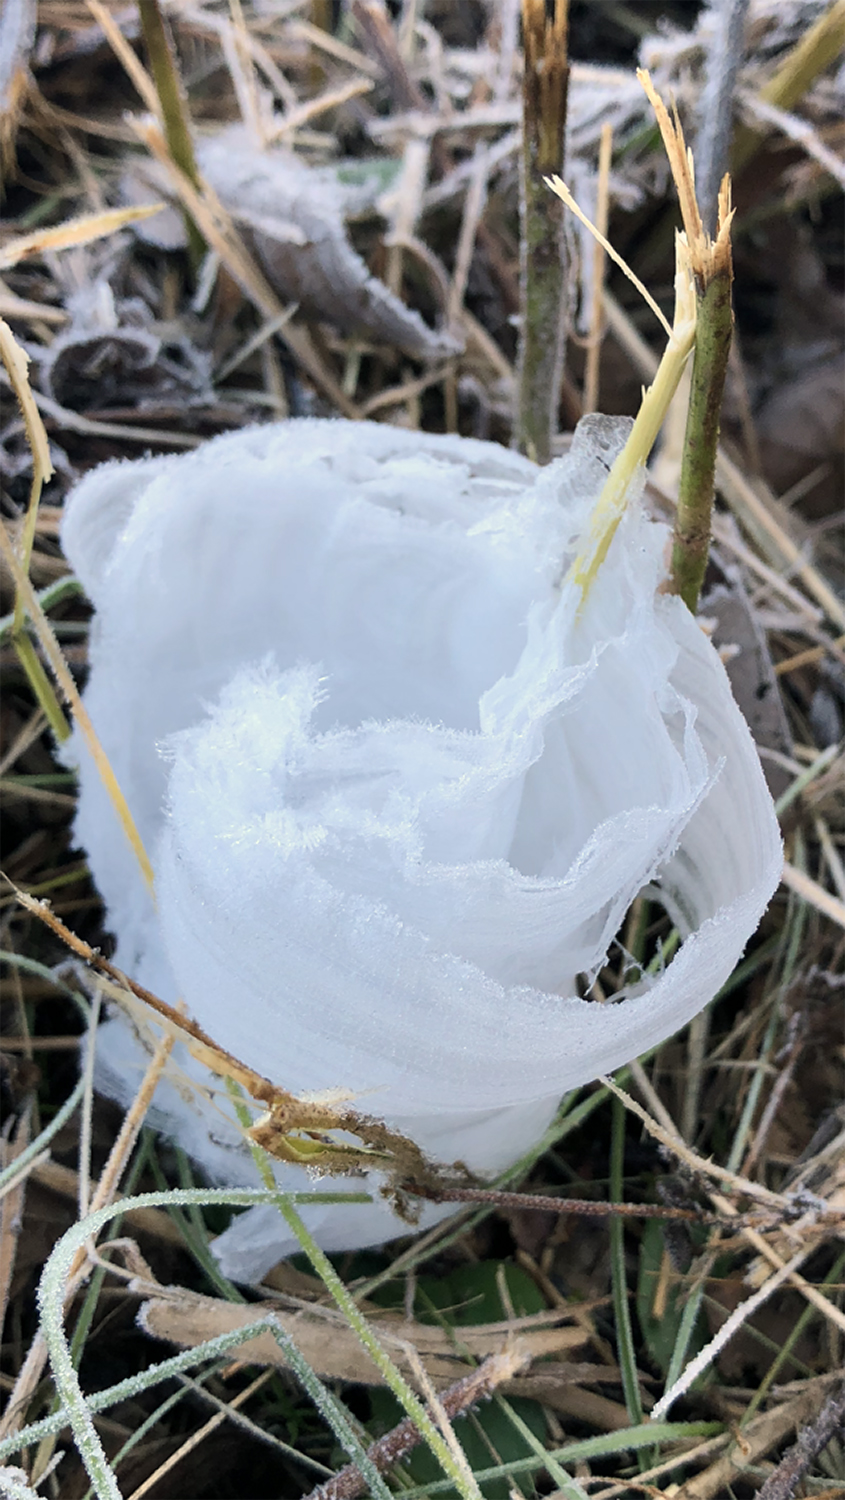 Frost flowers in Tennessee. Photograph shot on November 3, 2019. Copyright Keith Dotson.